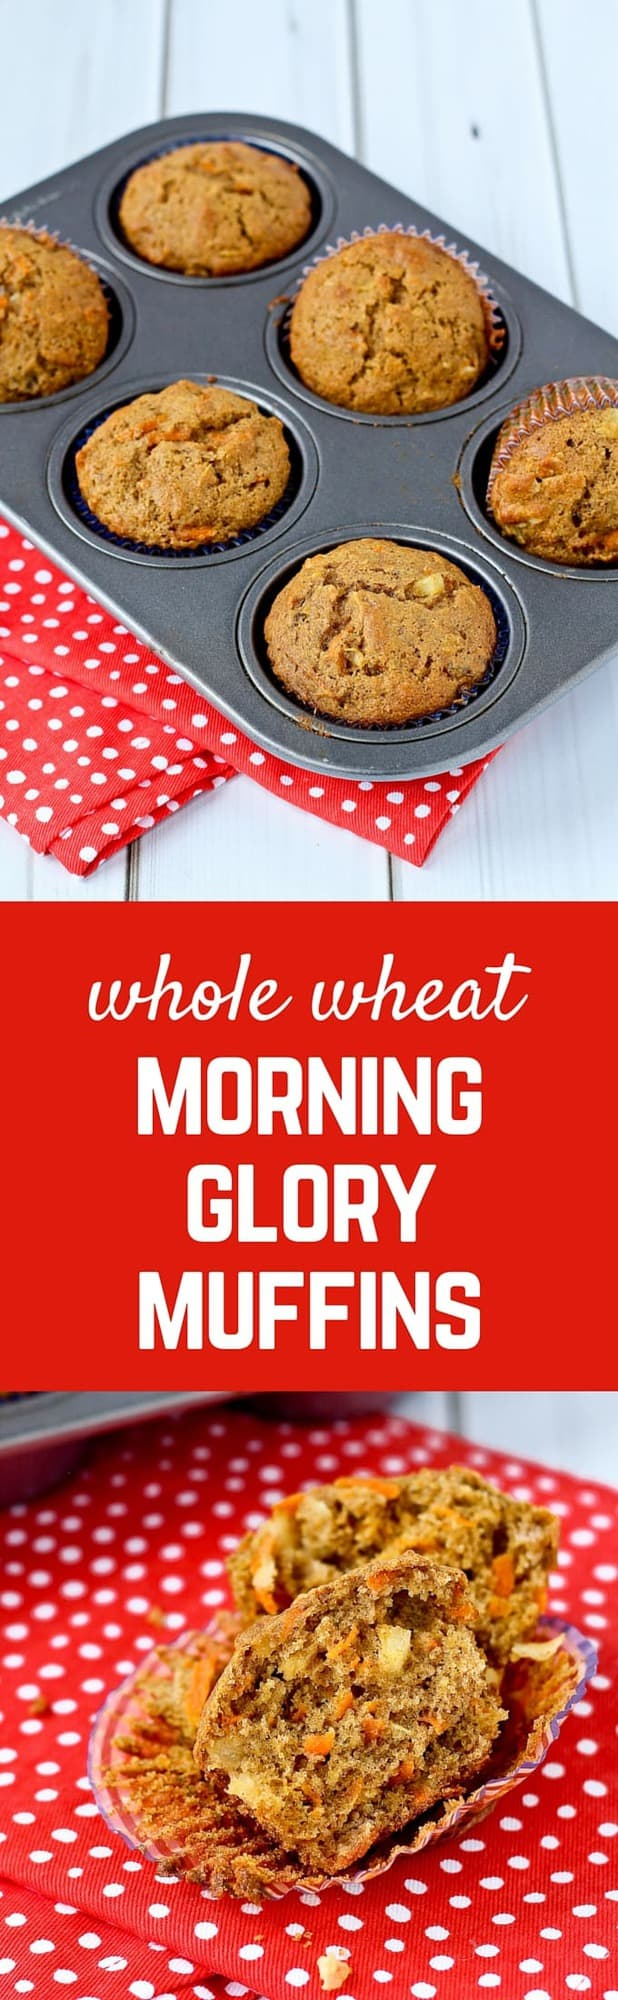 There aren't many better ways to start your day than with one of these morning glory muffins. Filling, flavorful, and oh so satisfying thanks to carrots, pineapple, coconut and raisins. Get the recipe on RachelCooks.com!